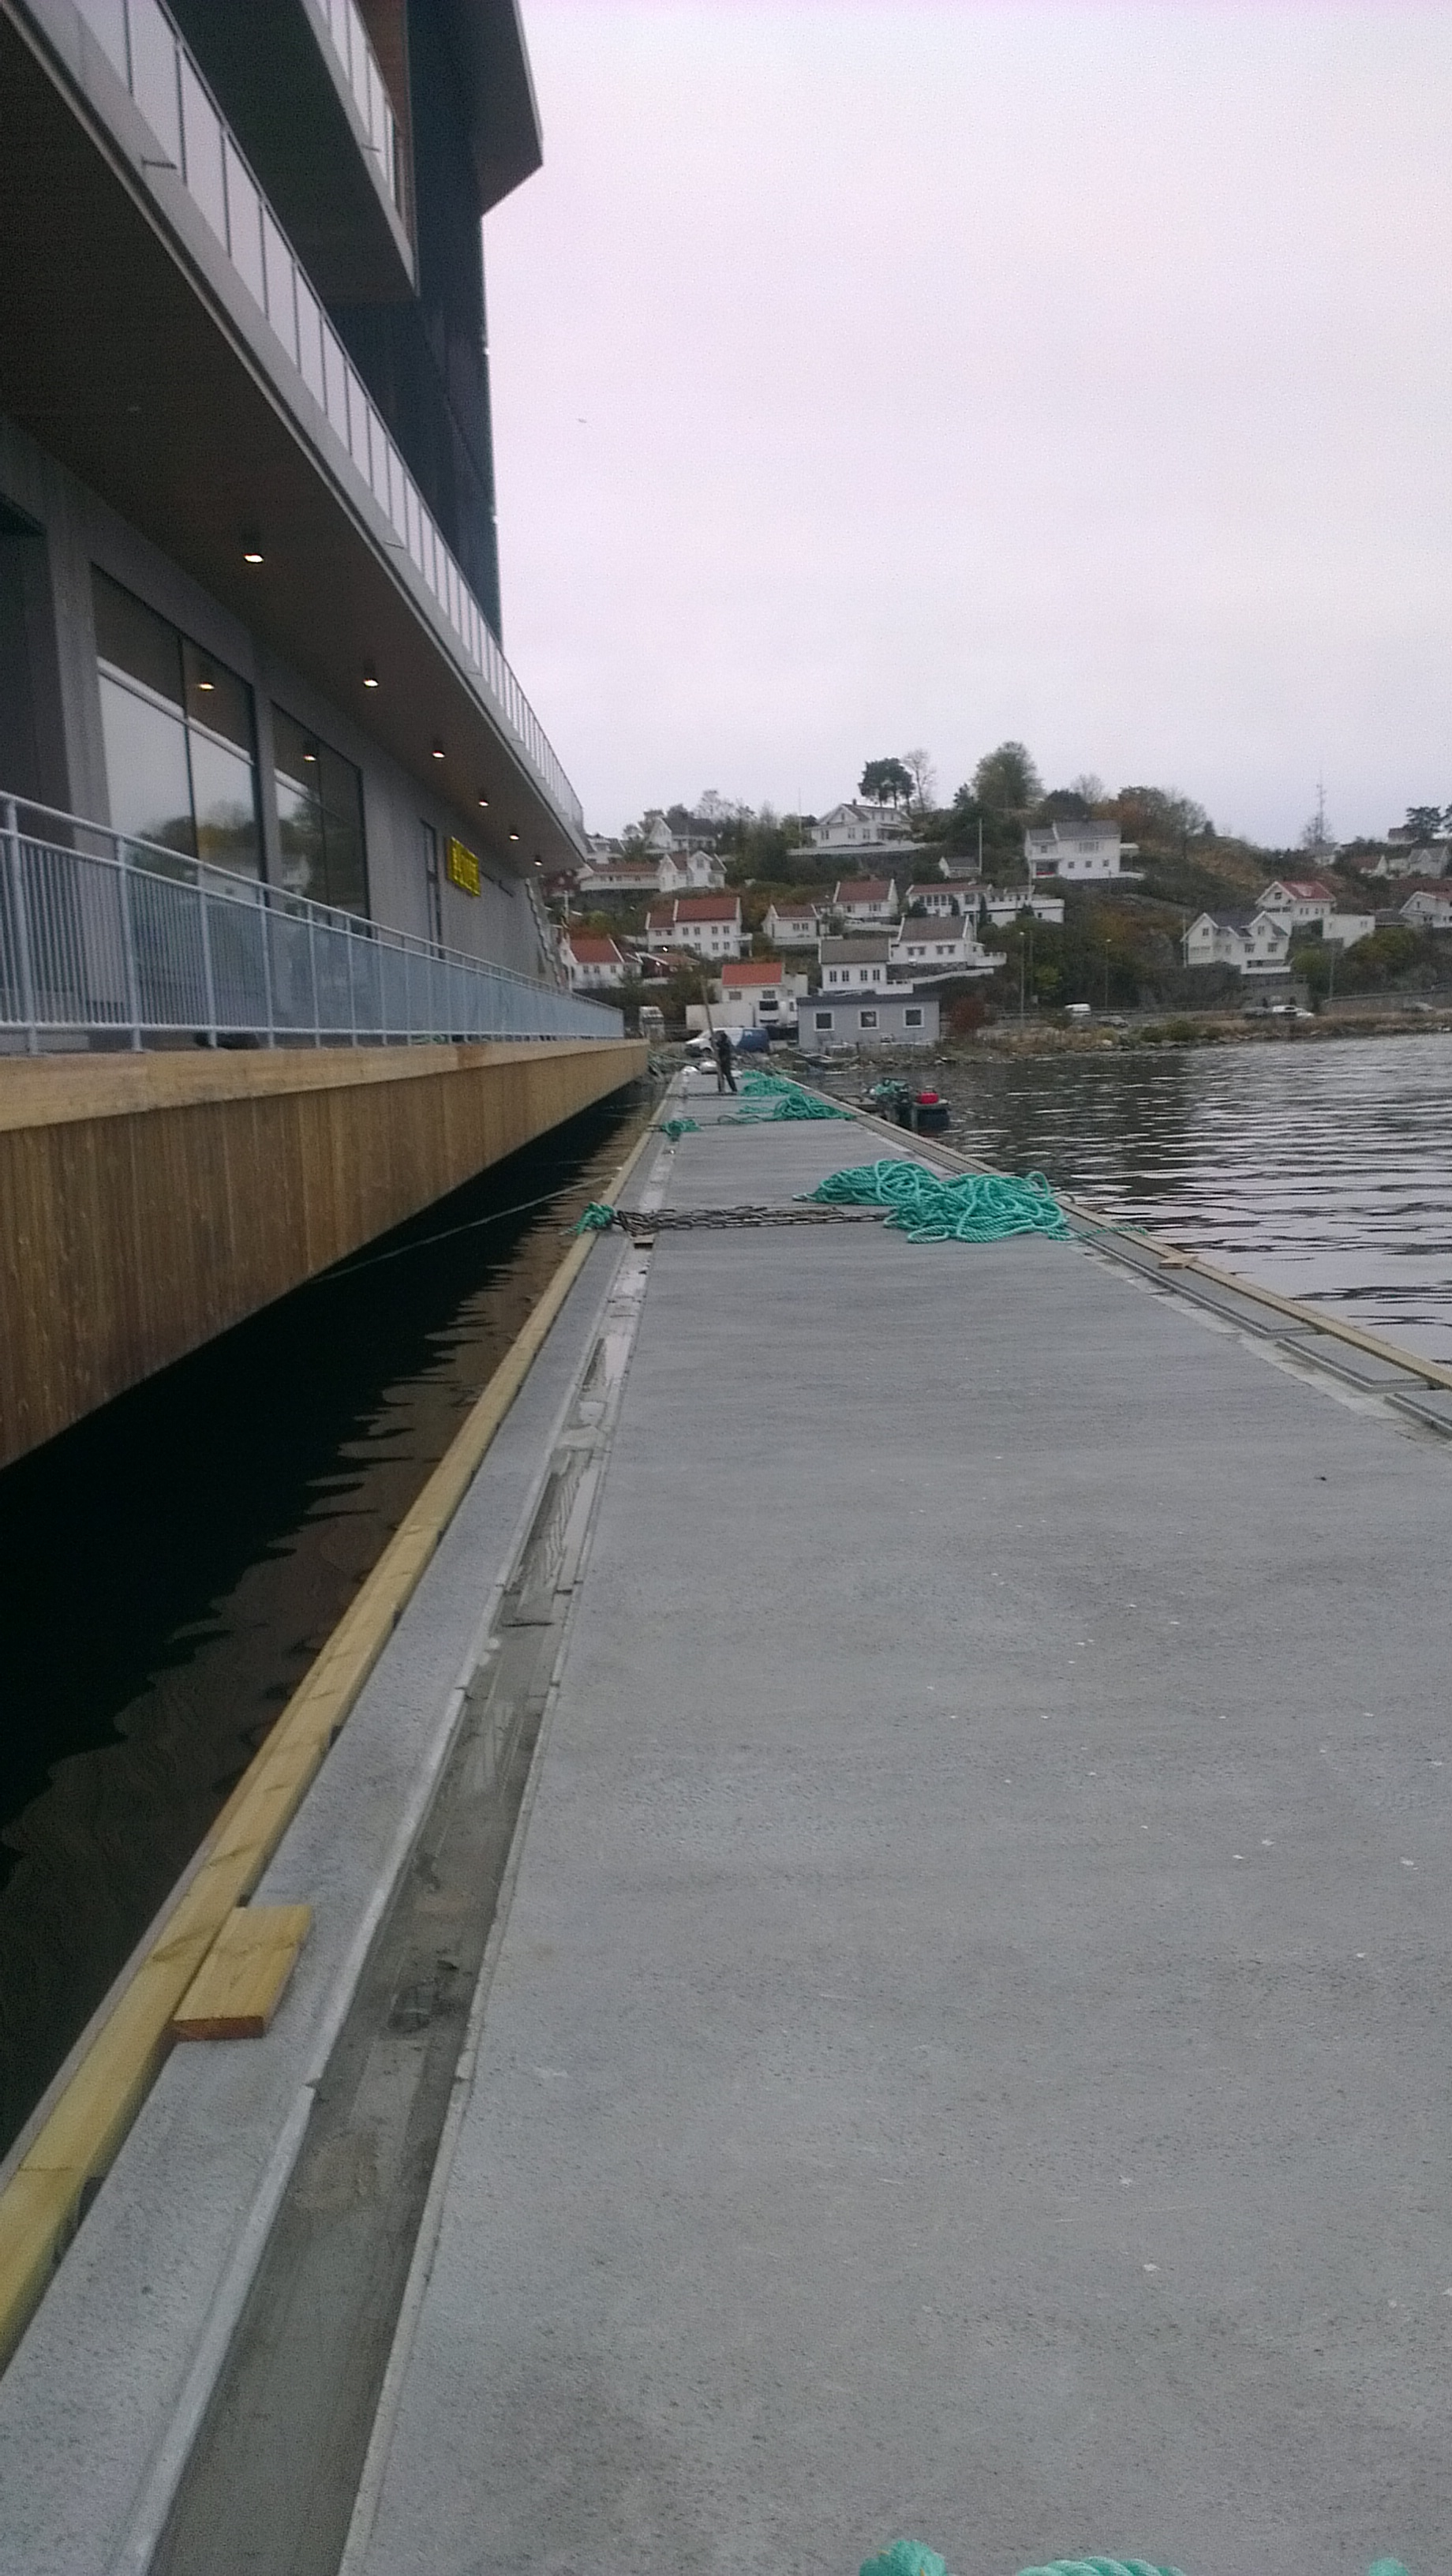 https://marinasolutions.no/uploads/100m-betongbrygge-under-montering-i-Arendal.jpg